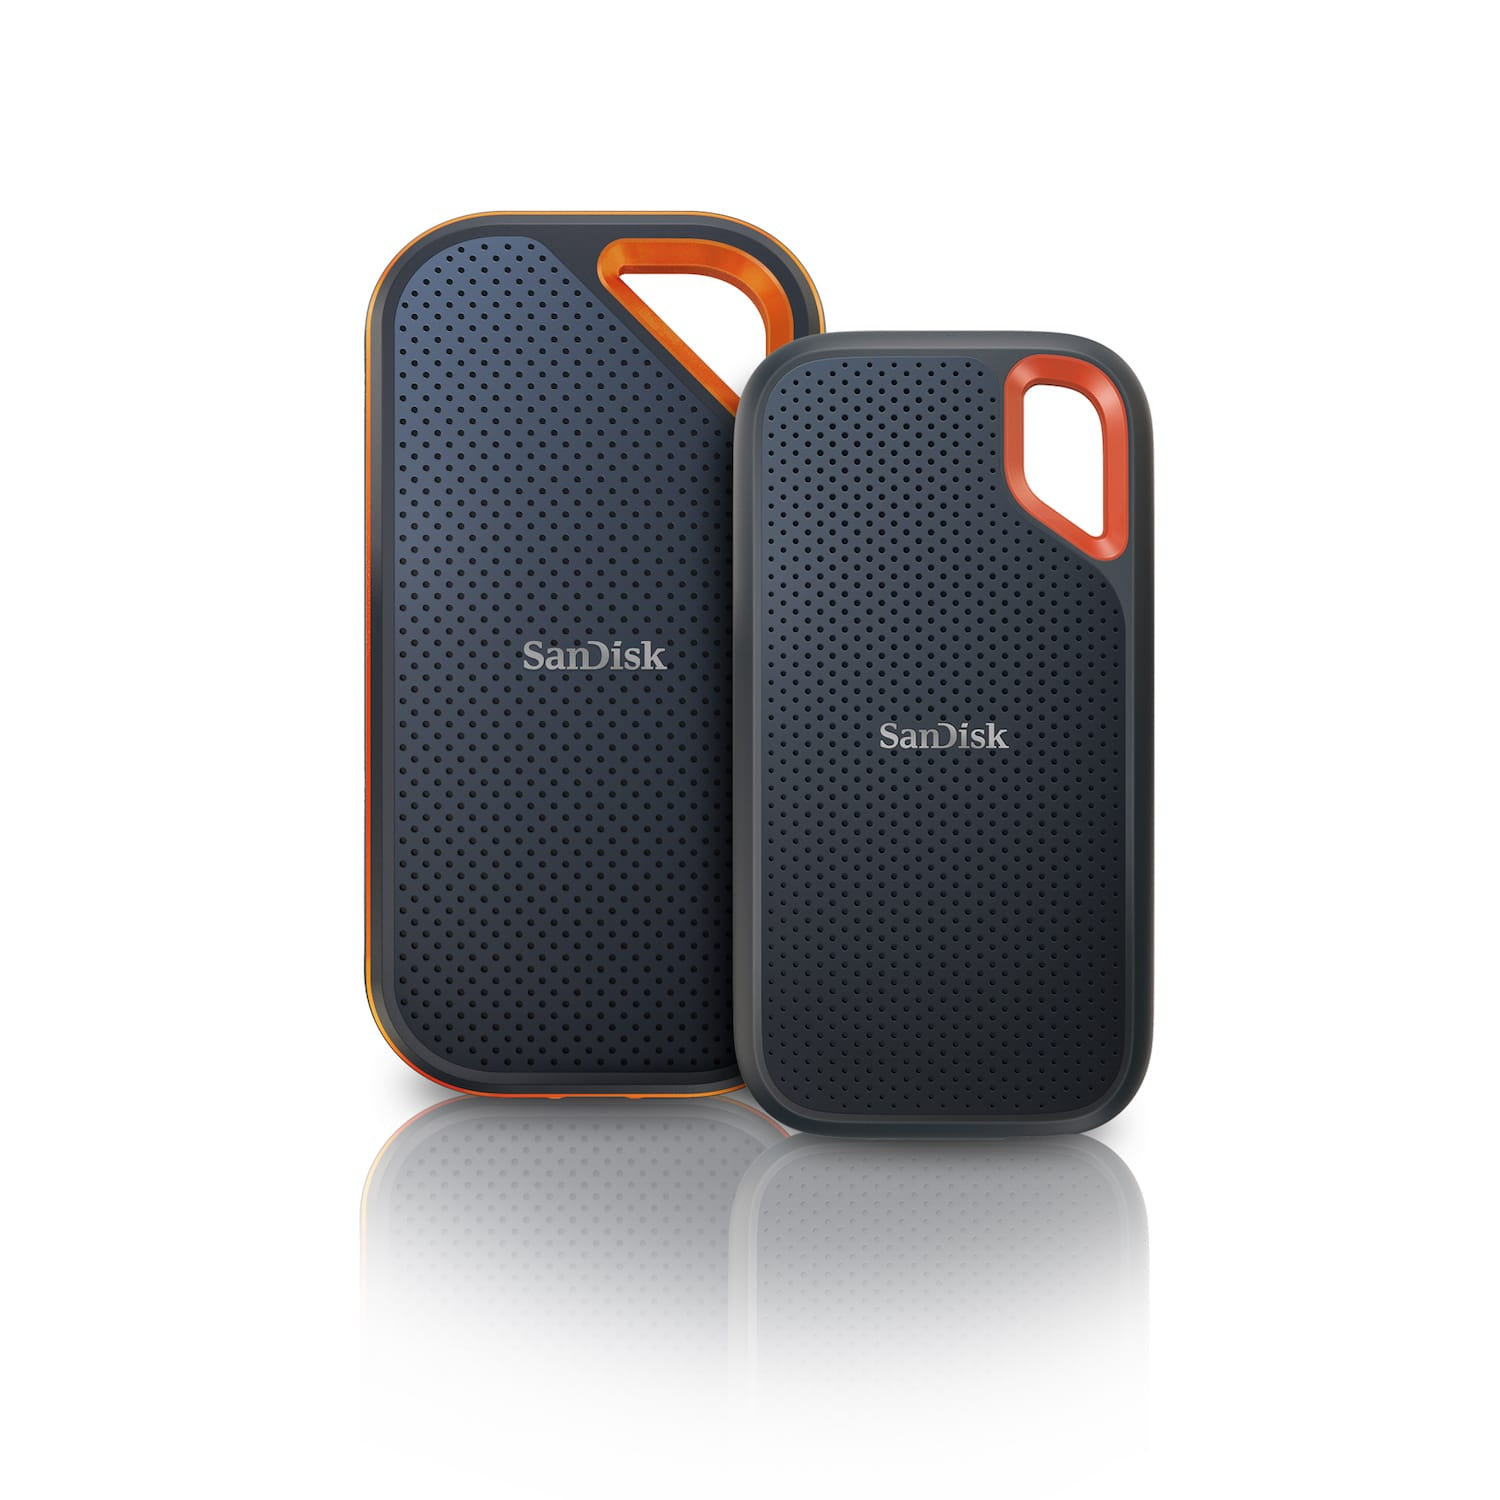 SanDisk Extreme – Extreme Pro Portable SSDs2